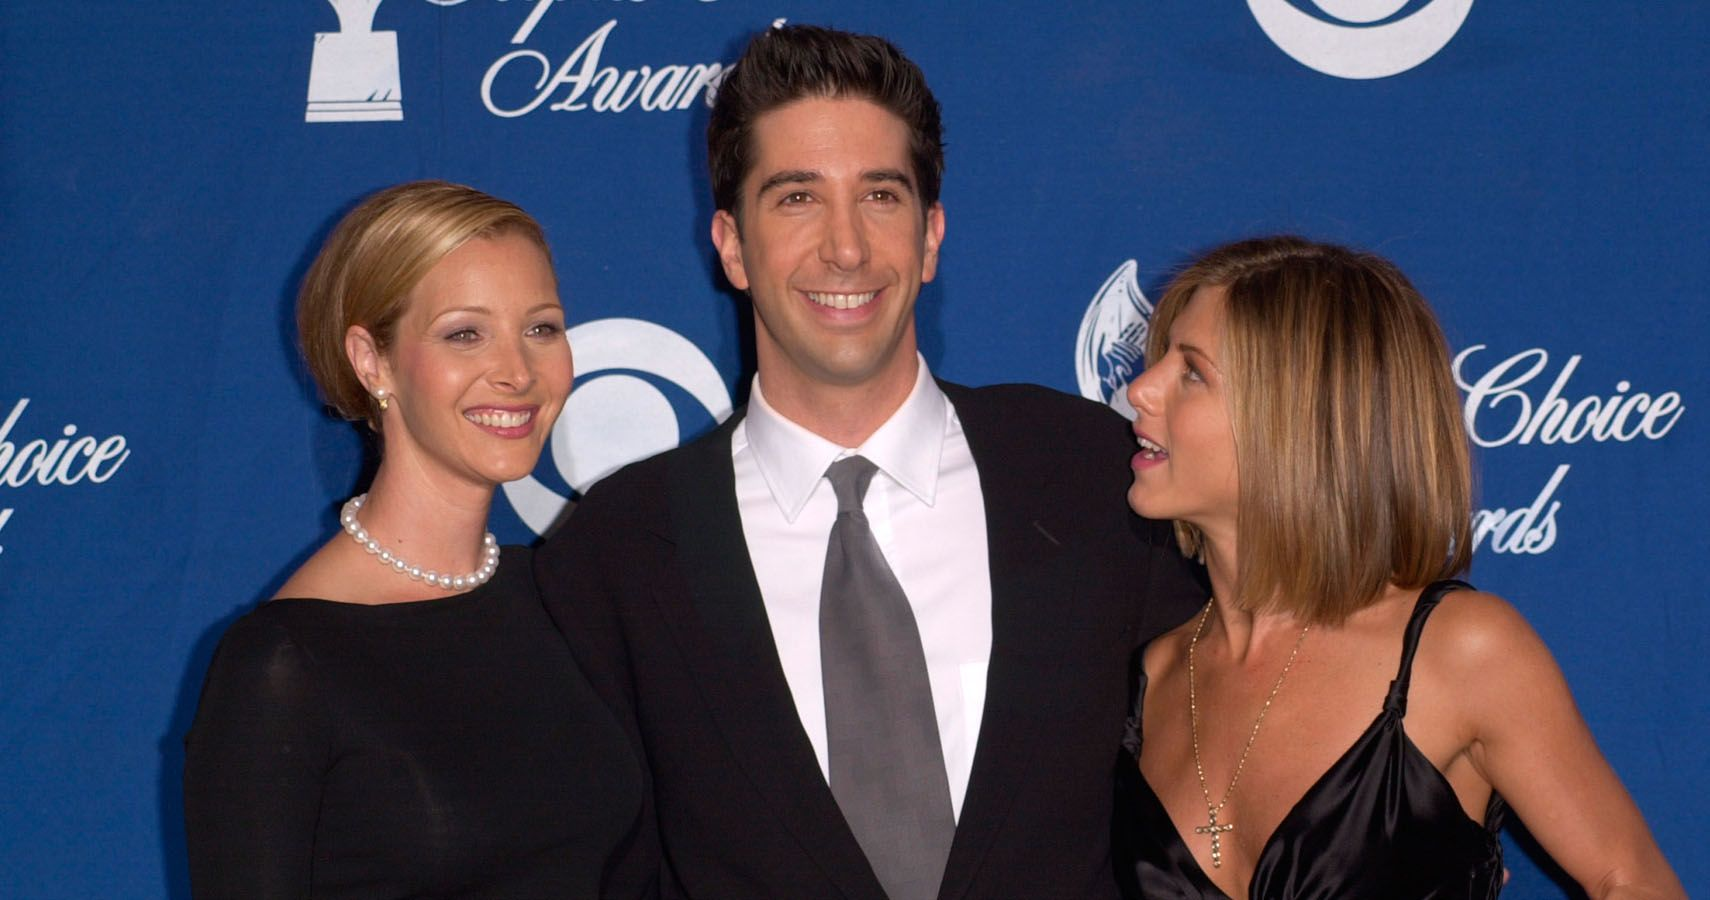 From Ross To Boss: How David Schwimmer Grew $100 Million